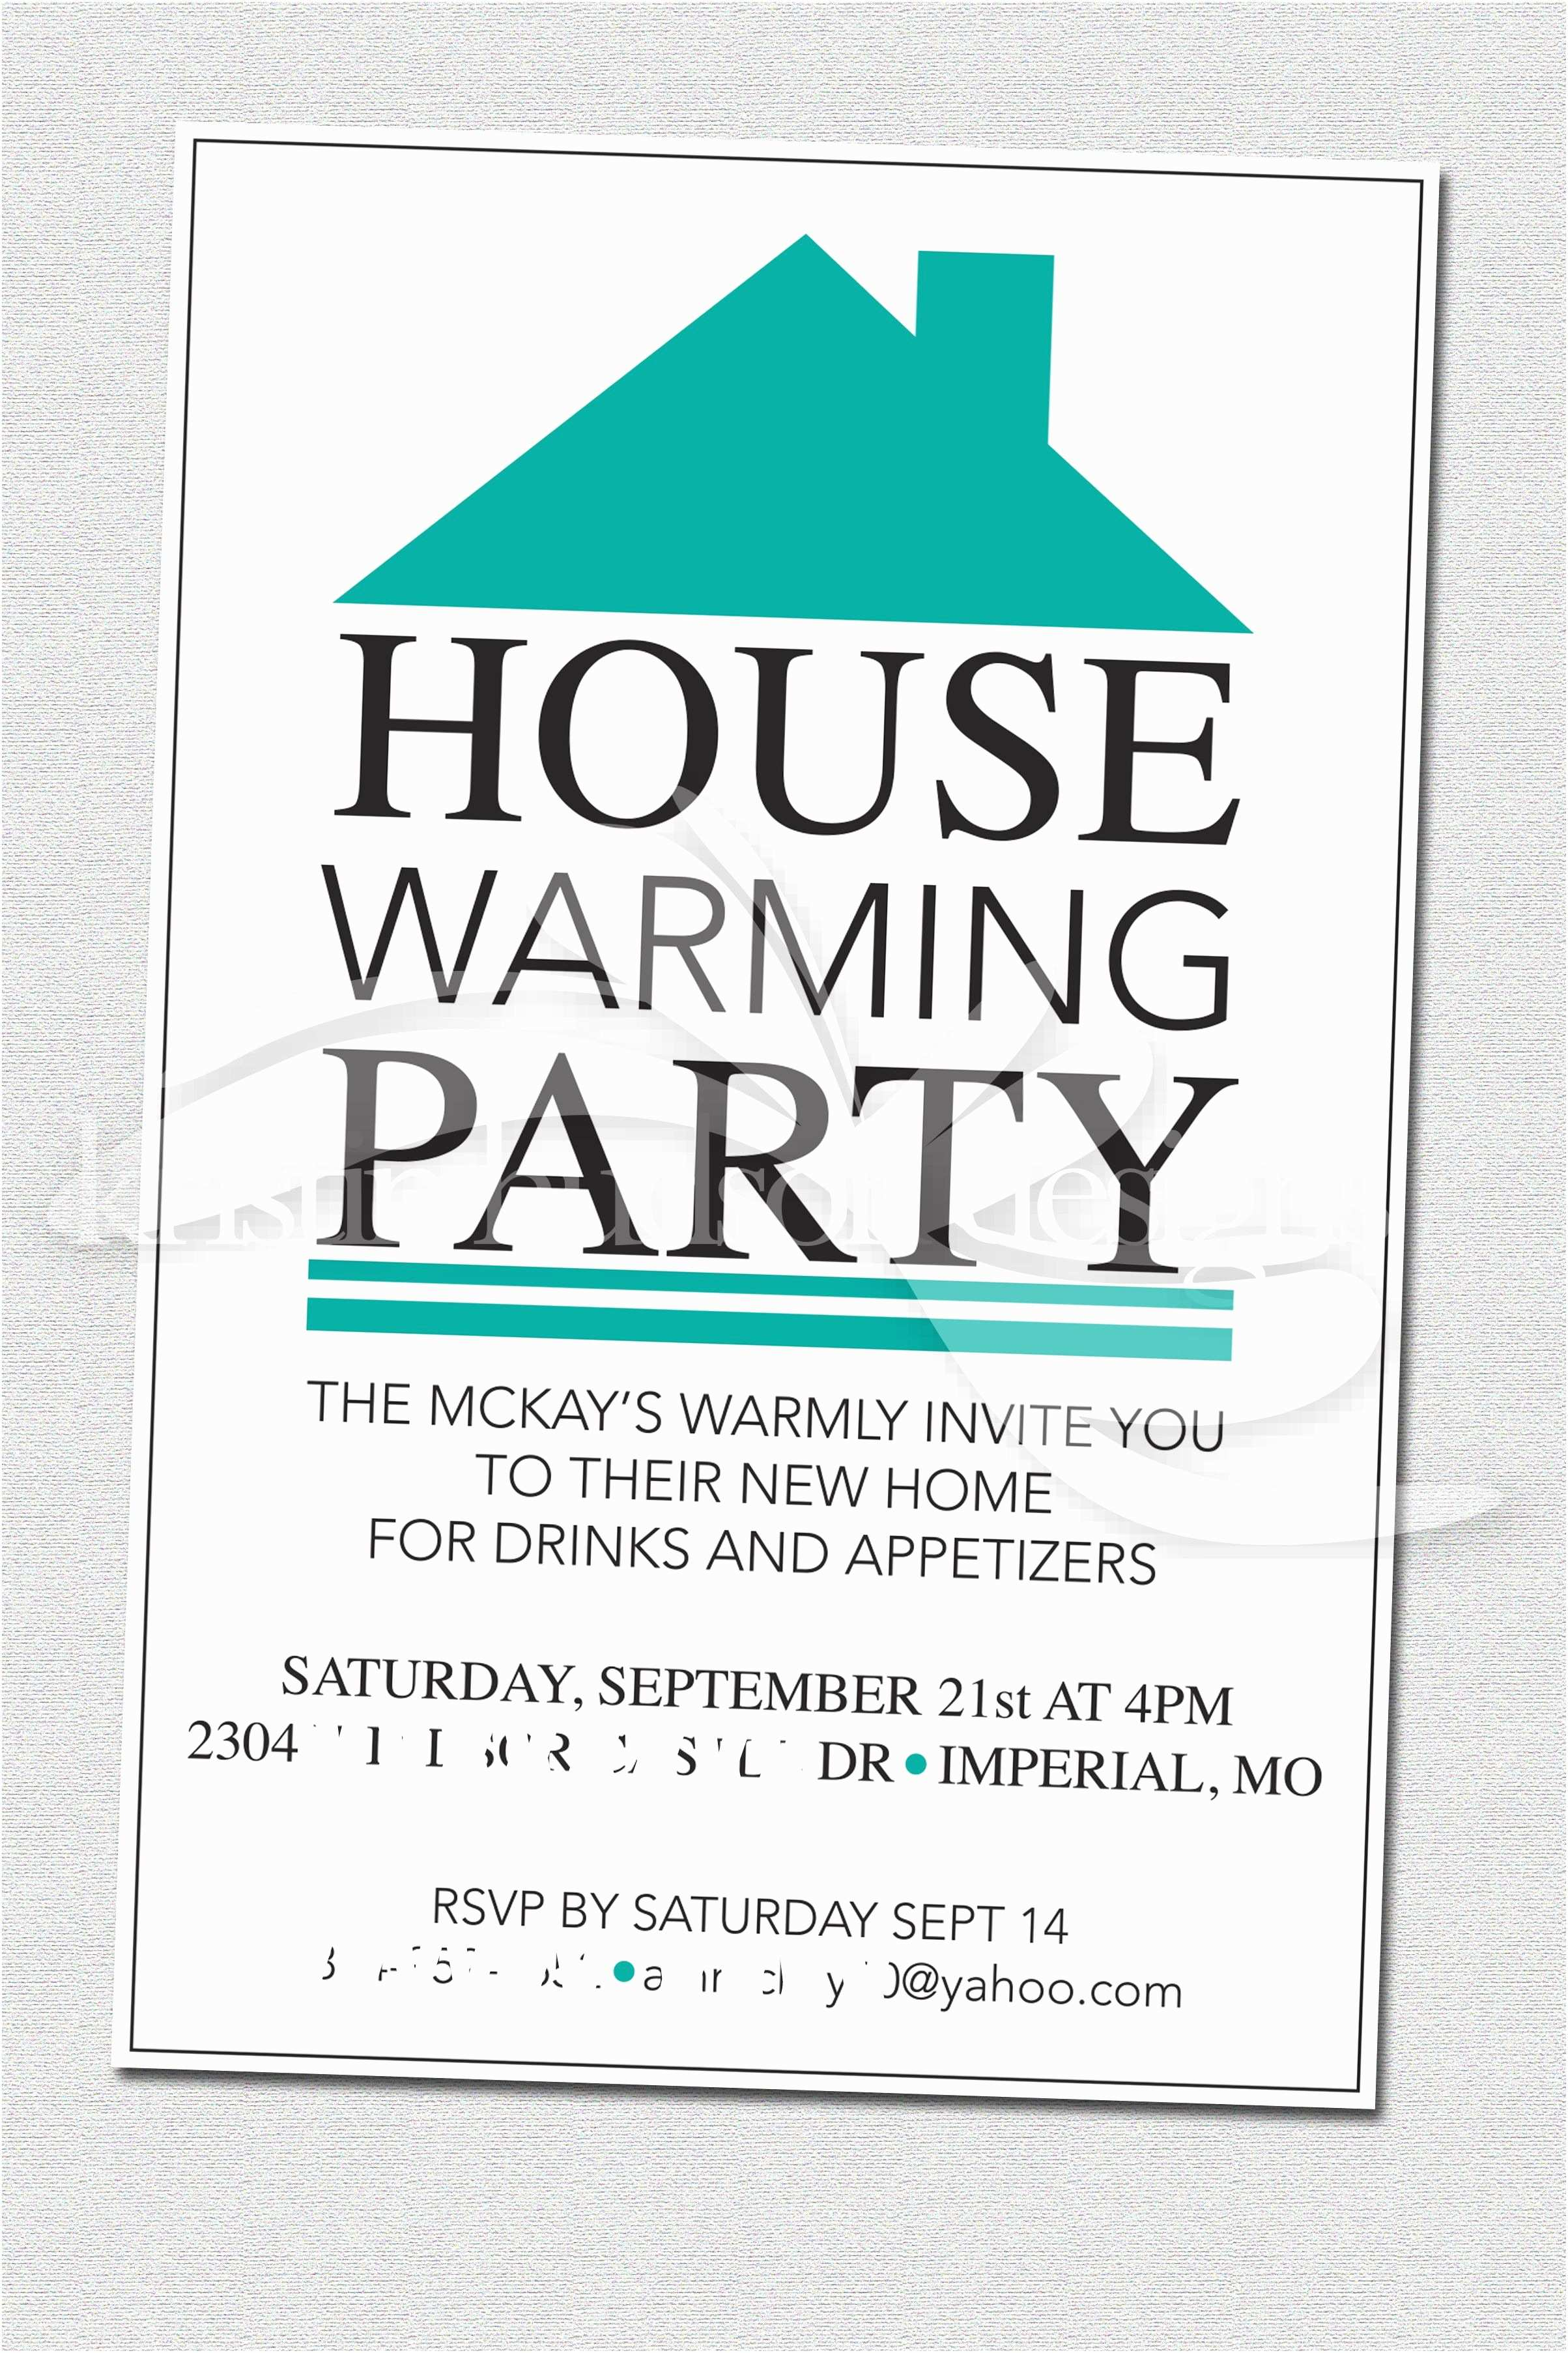 Housewarming Party Invitation Ideas House Warming Party Invite